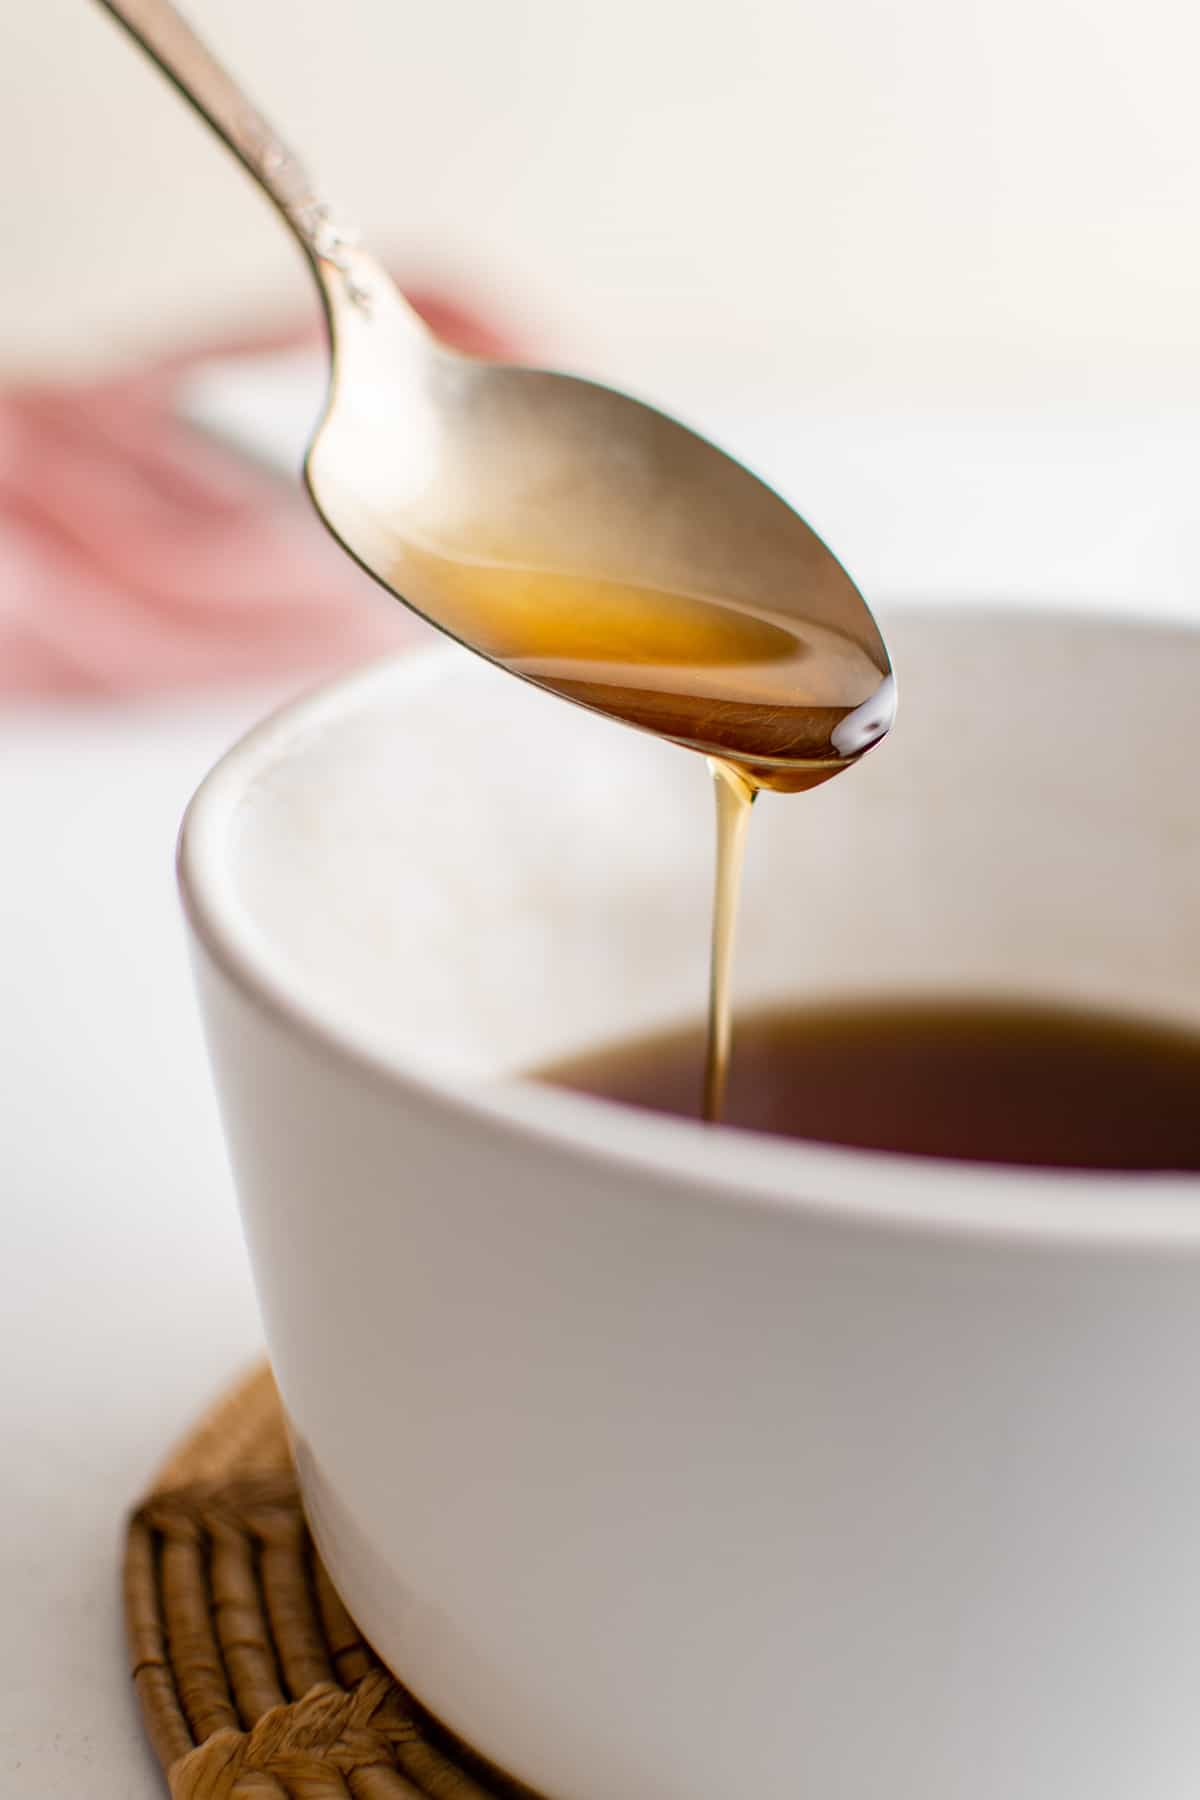 Syrup on a spoon to show thickness.